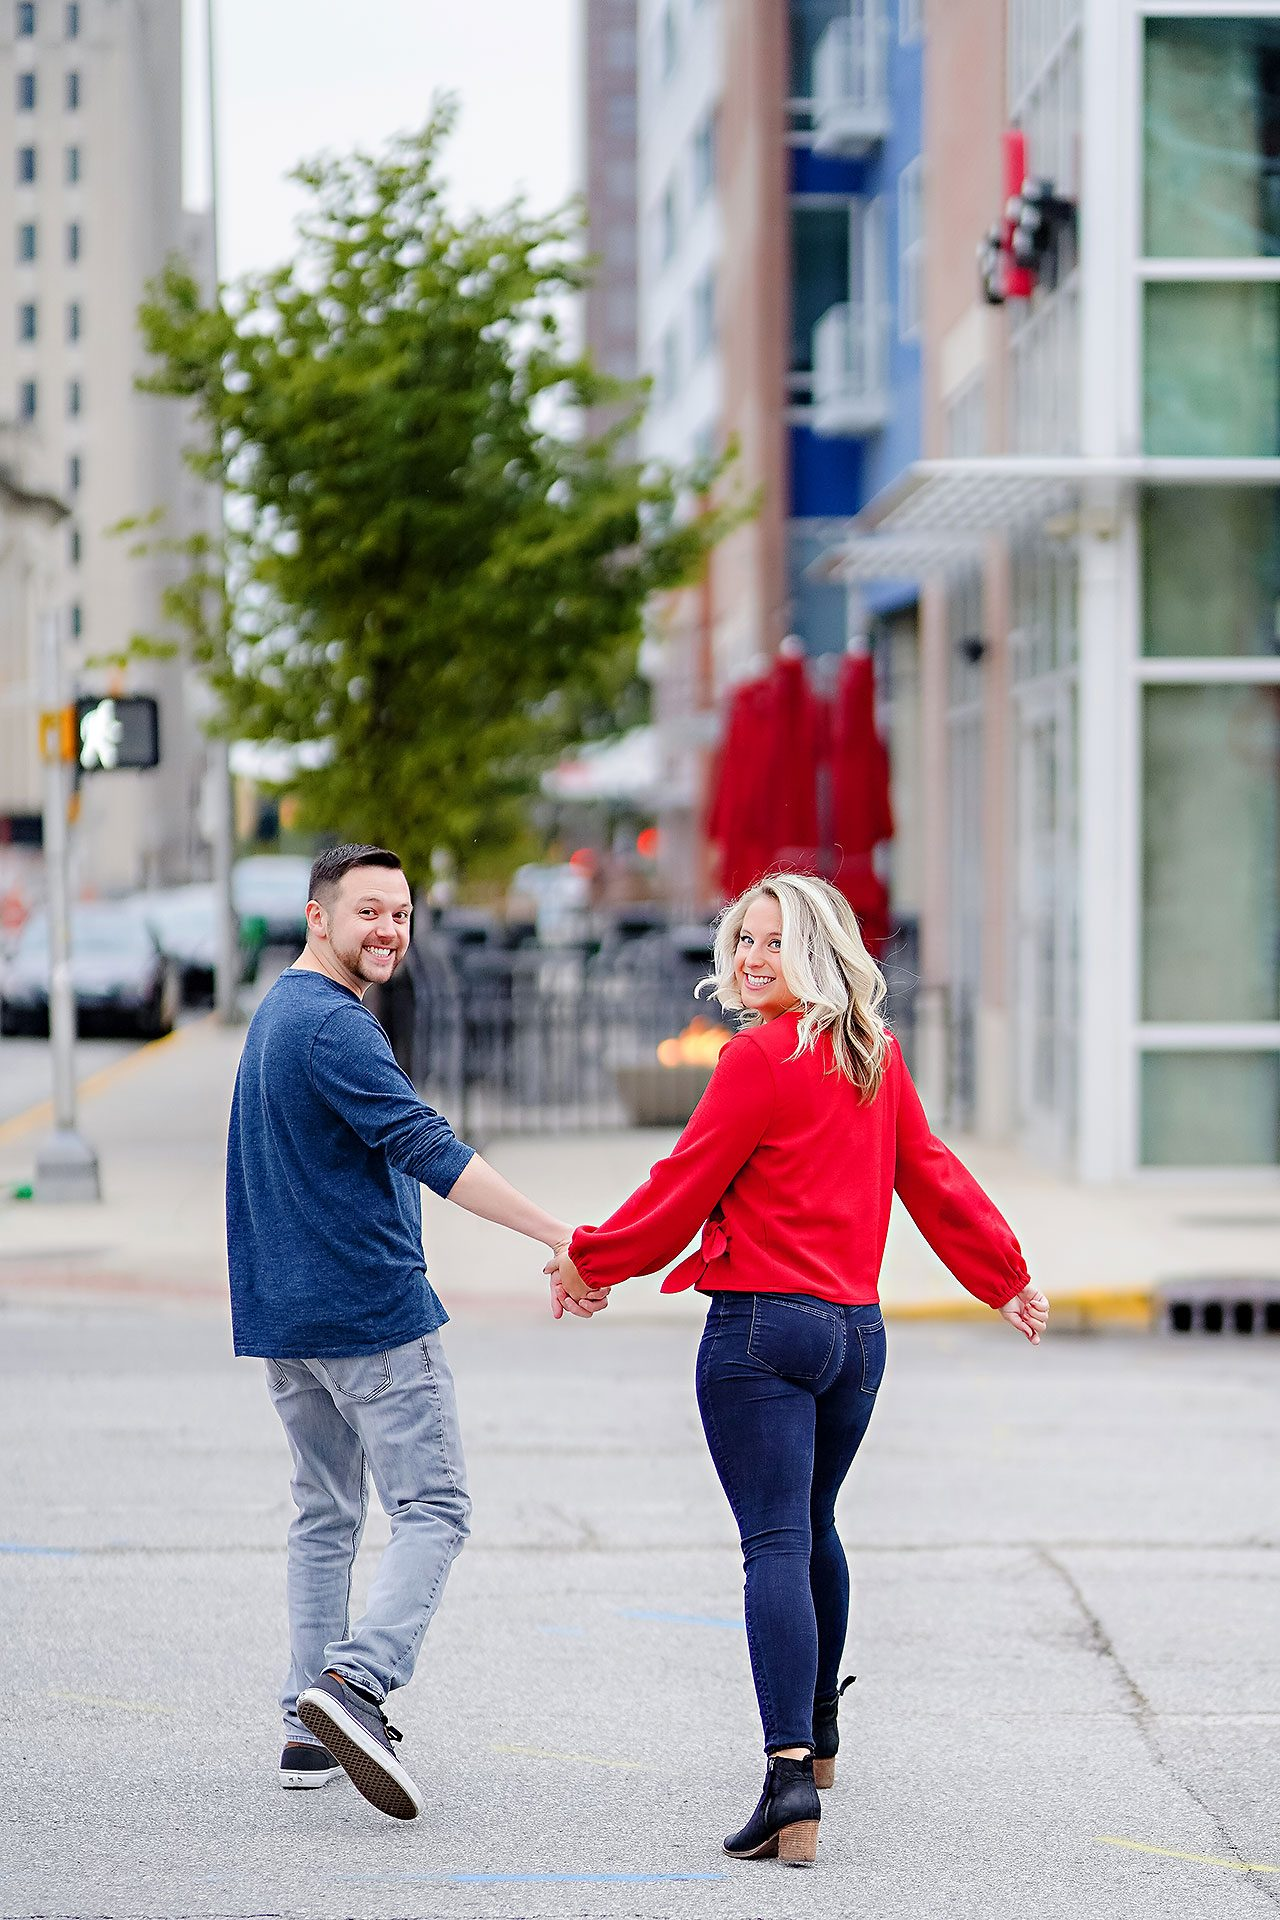 Kristen Jonny Indianapolis Downtown Engagement Session 033